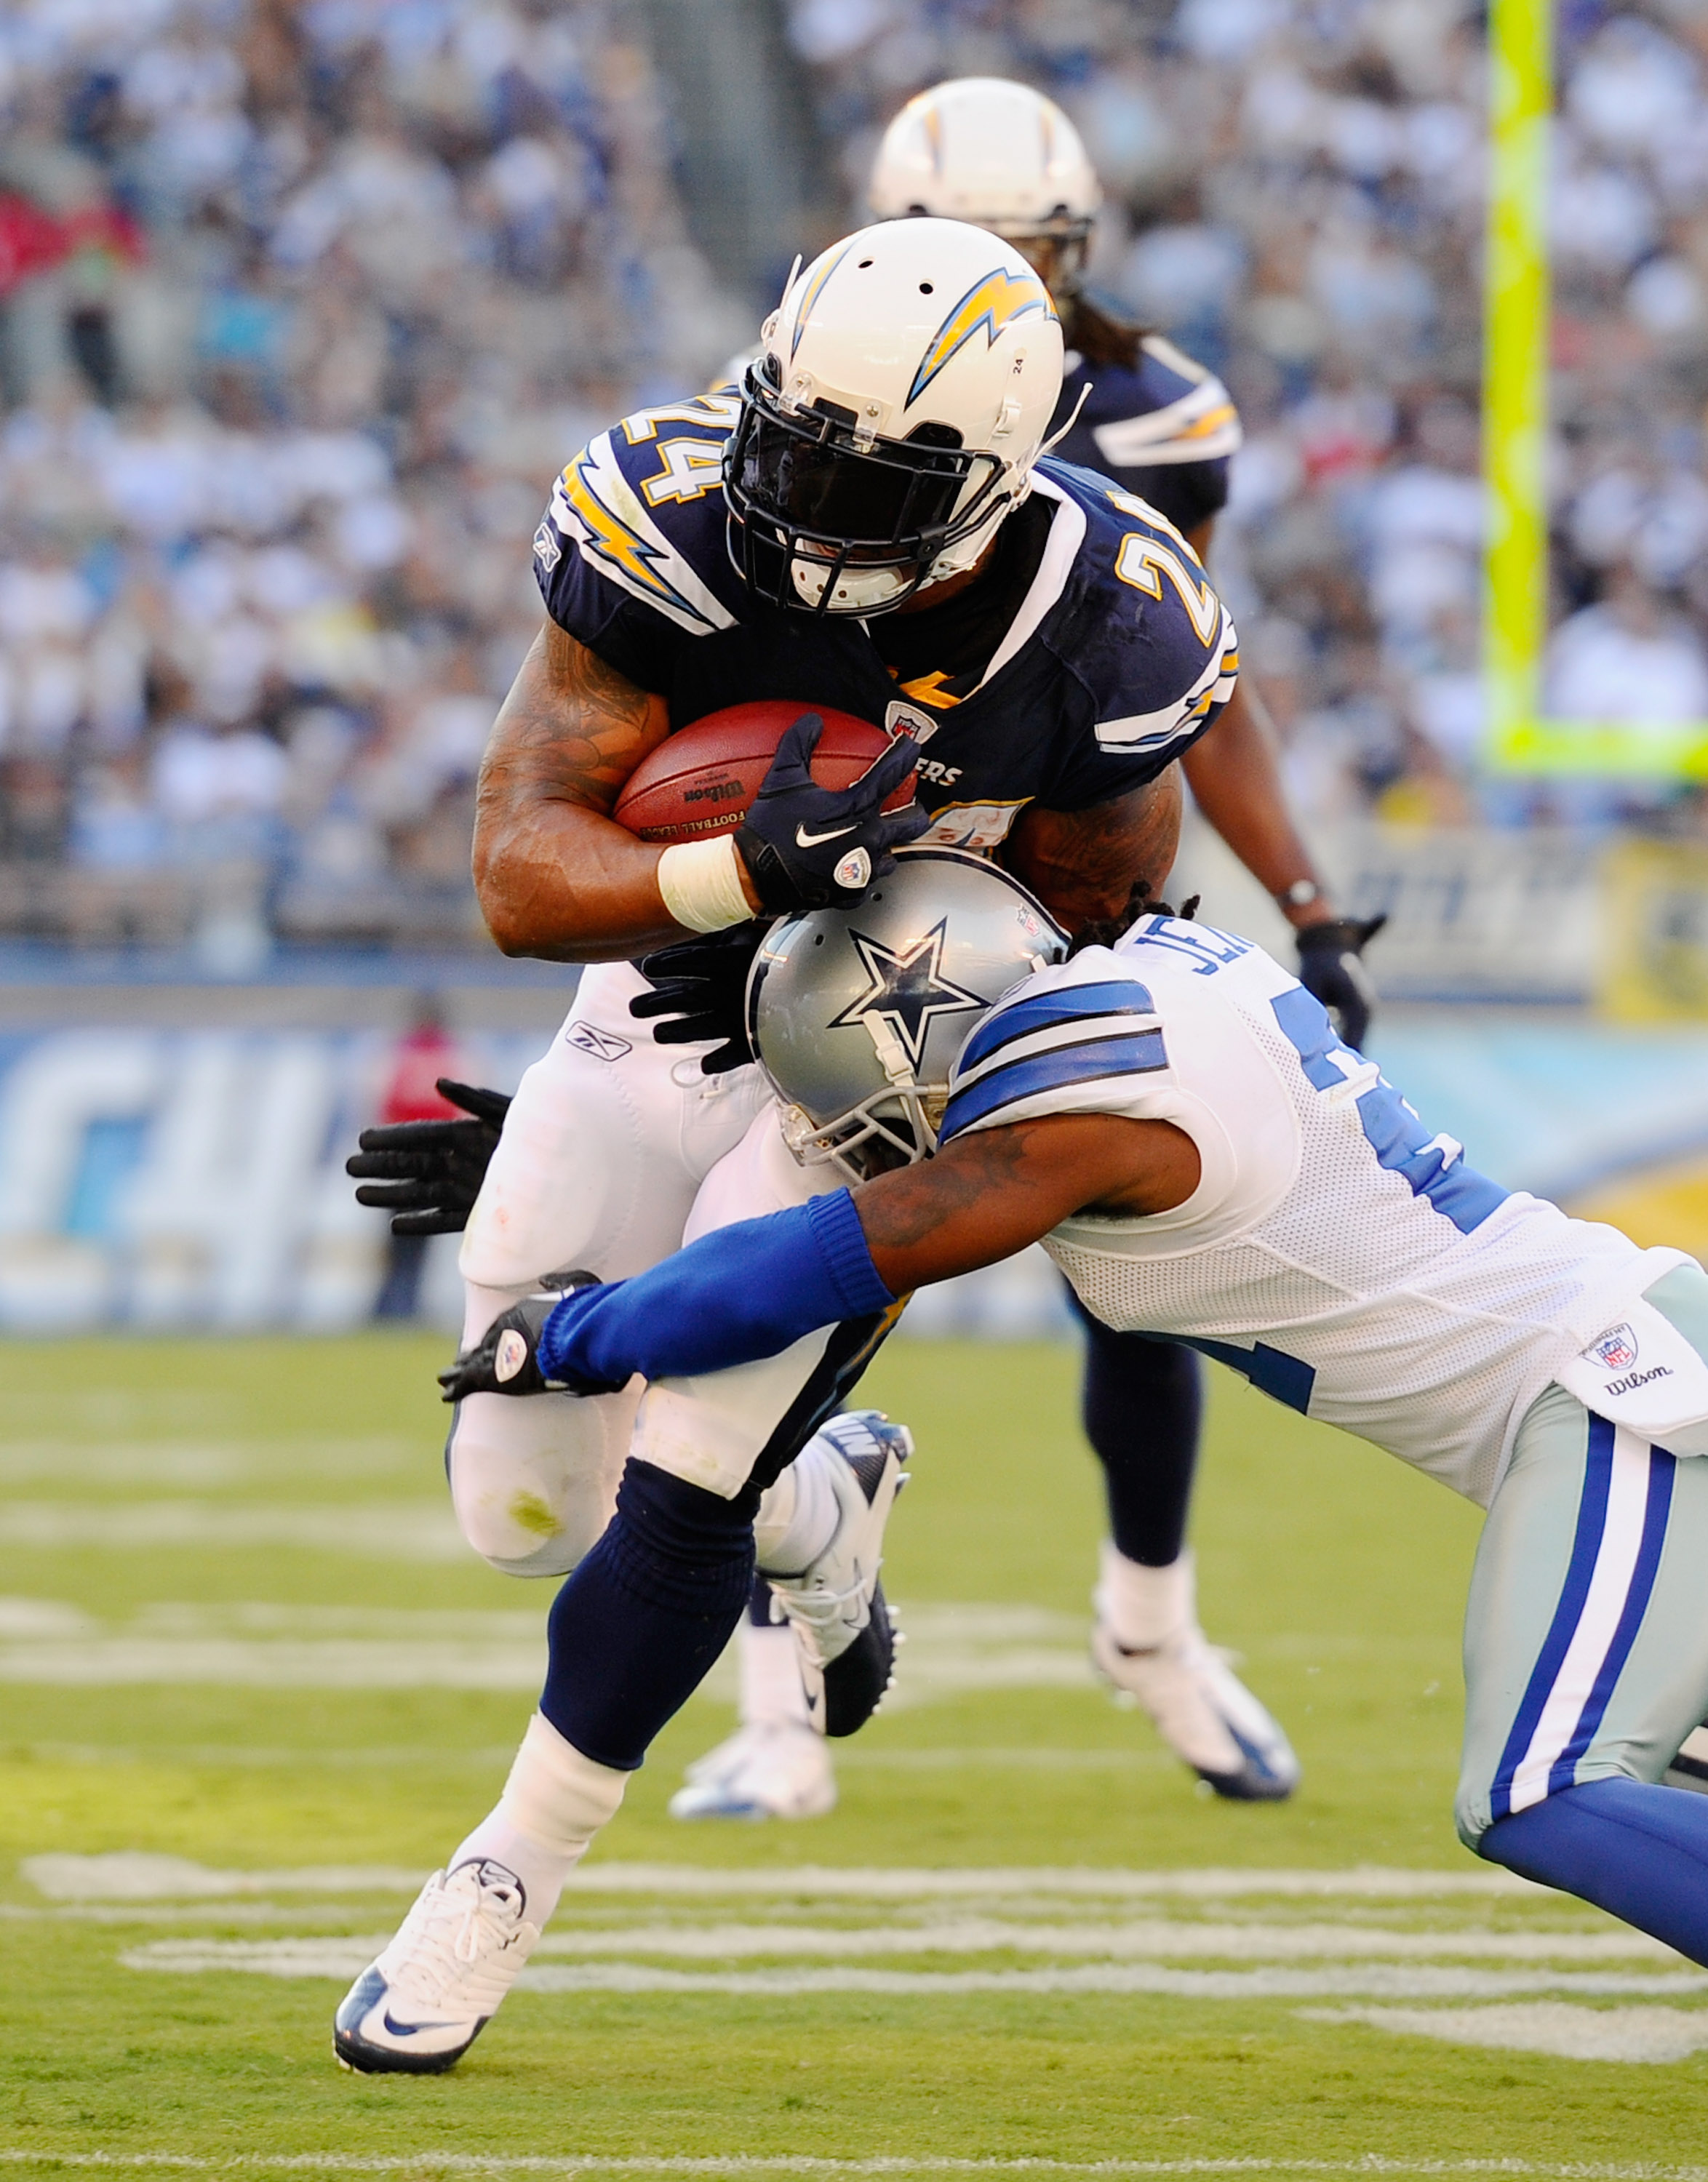 SAN DIEGO - AUGUST 21:  Running back Ryan Matthews #24 of the San Diego Chargers rushes during the pre-season NFL football game against Dallas Cowboys at Qualcomm Stadium on August 21, 2010 in San Diego, California.  (Photo by Kevork Djansezian/Getty Imag